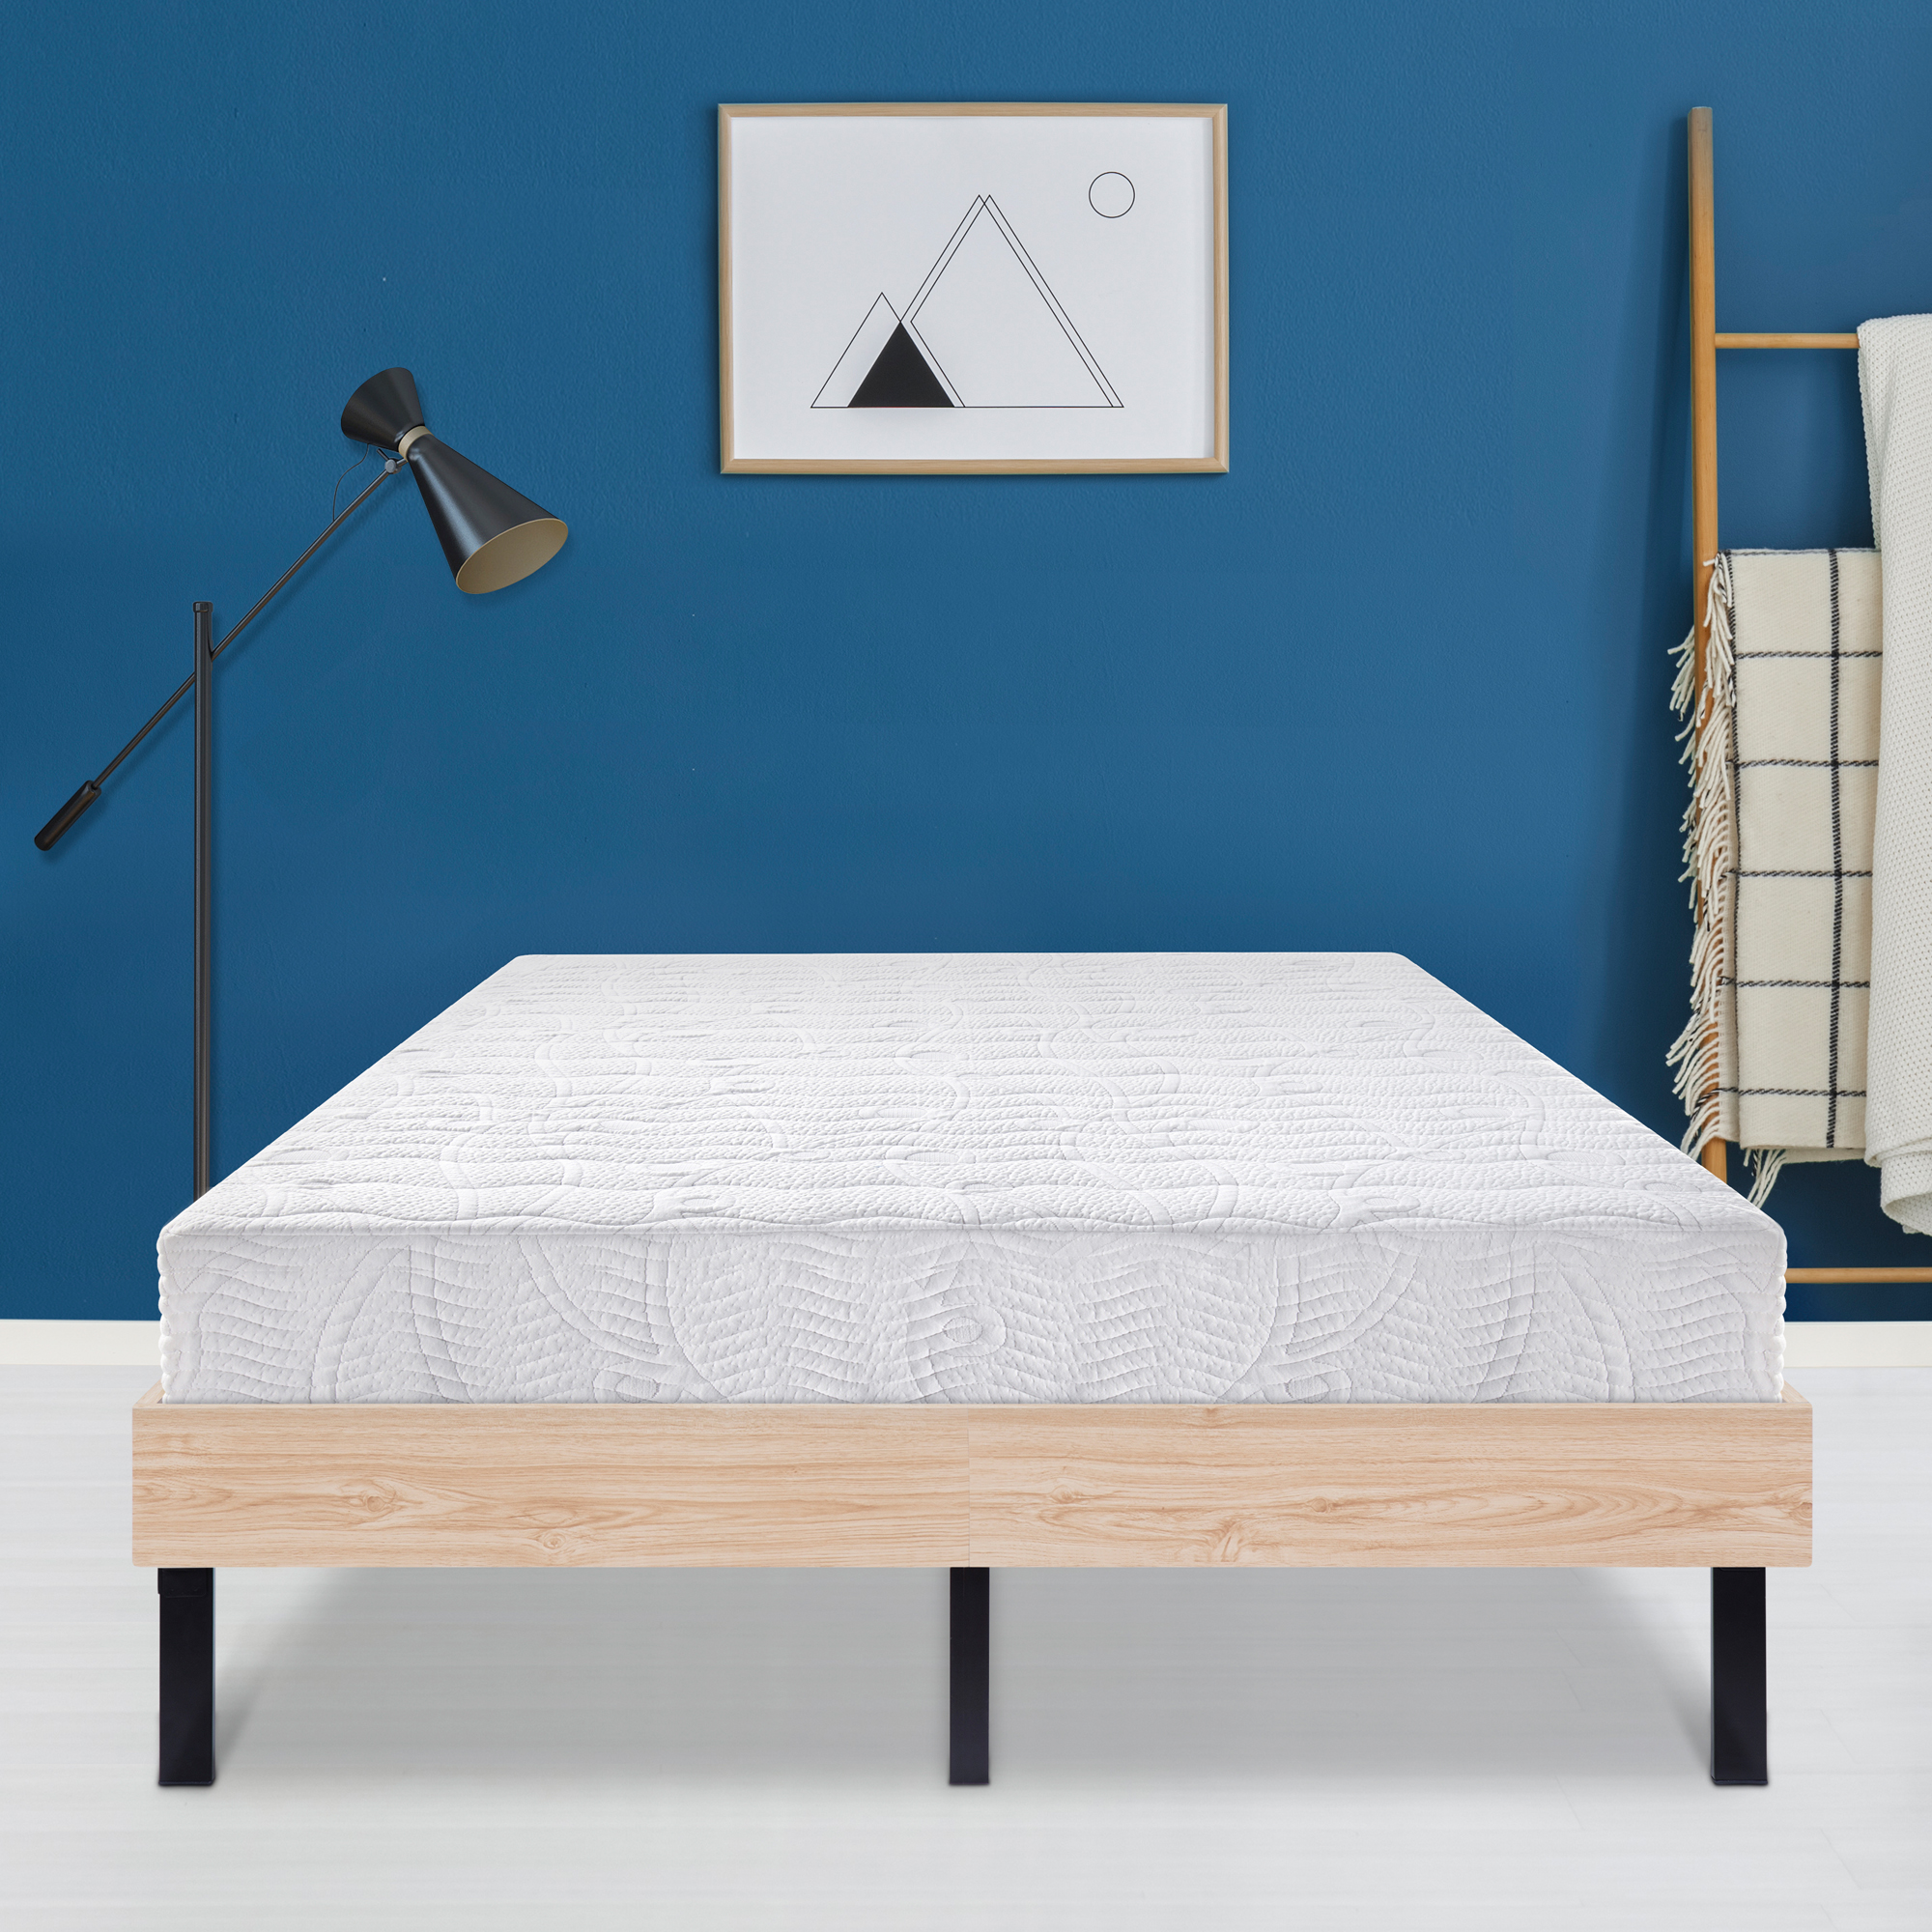 GranRest 14 Inch Classic Natural Wood Finished Platform Bed Frame / Dura Steel Slat Support, Stylish Natural